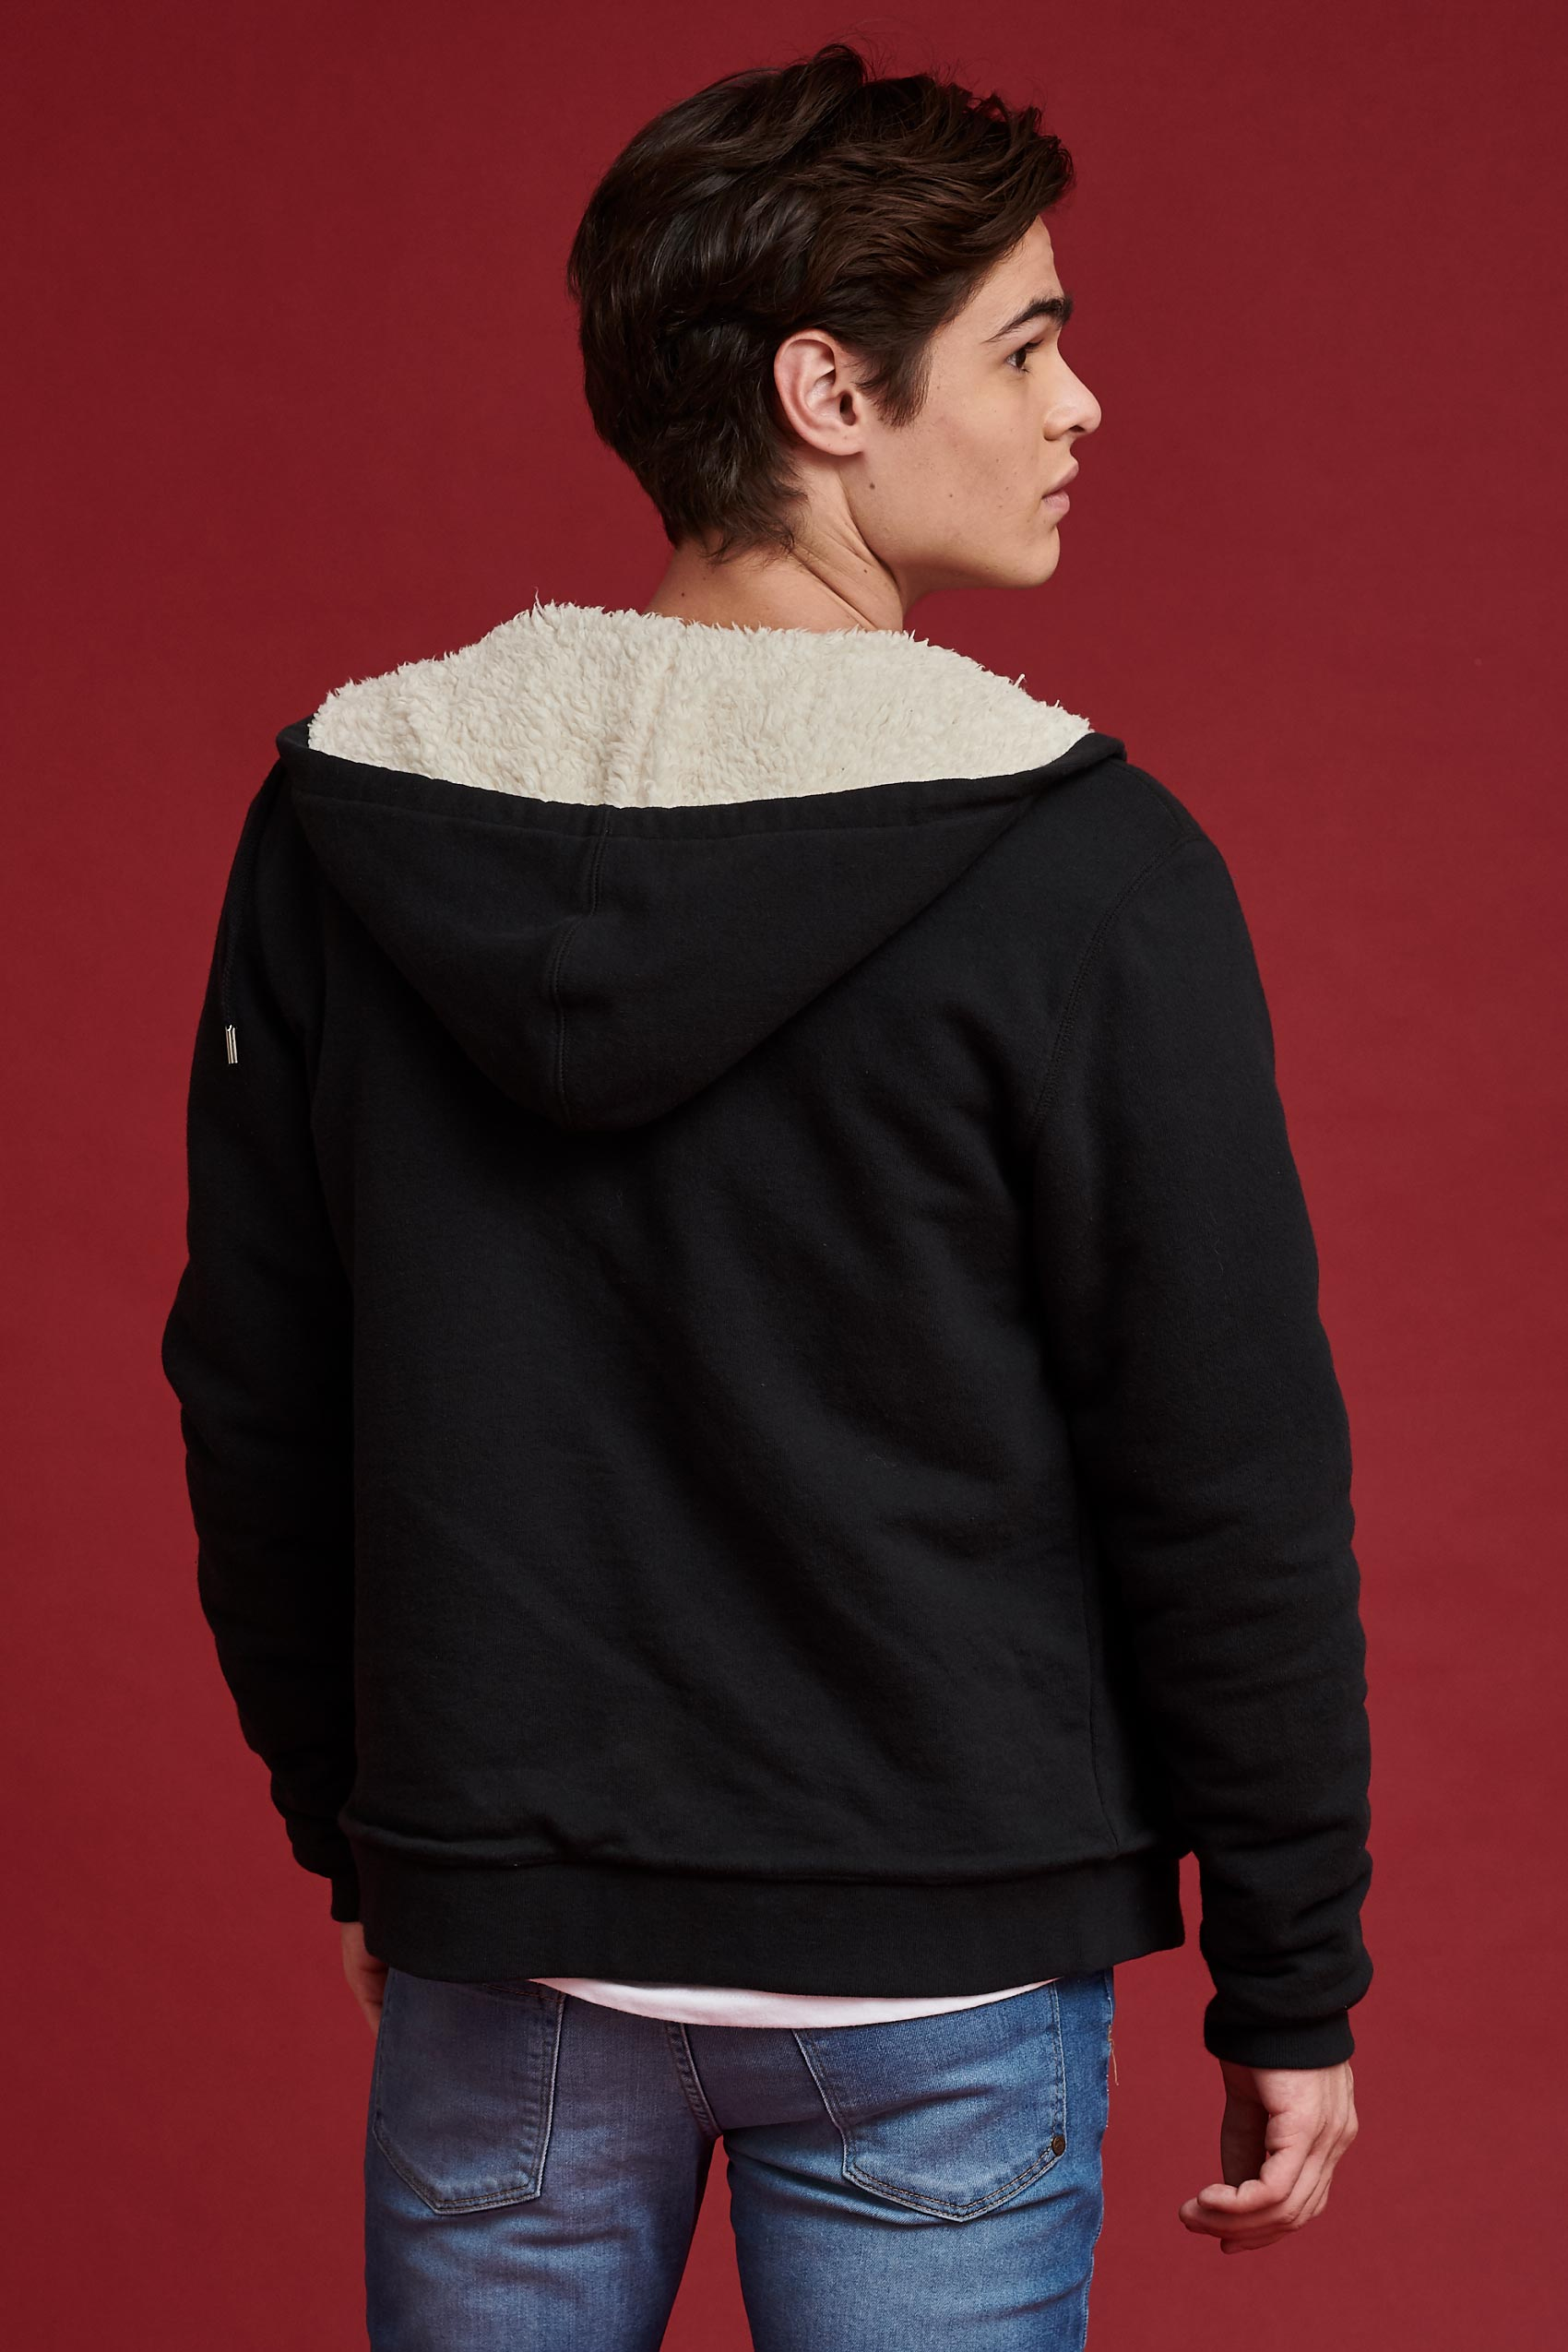 penguin_sherpa-lined-zip-hoodie_00-21-2020__picture-12932